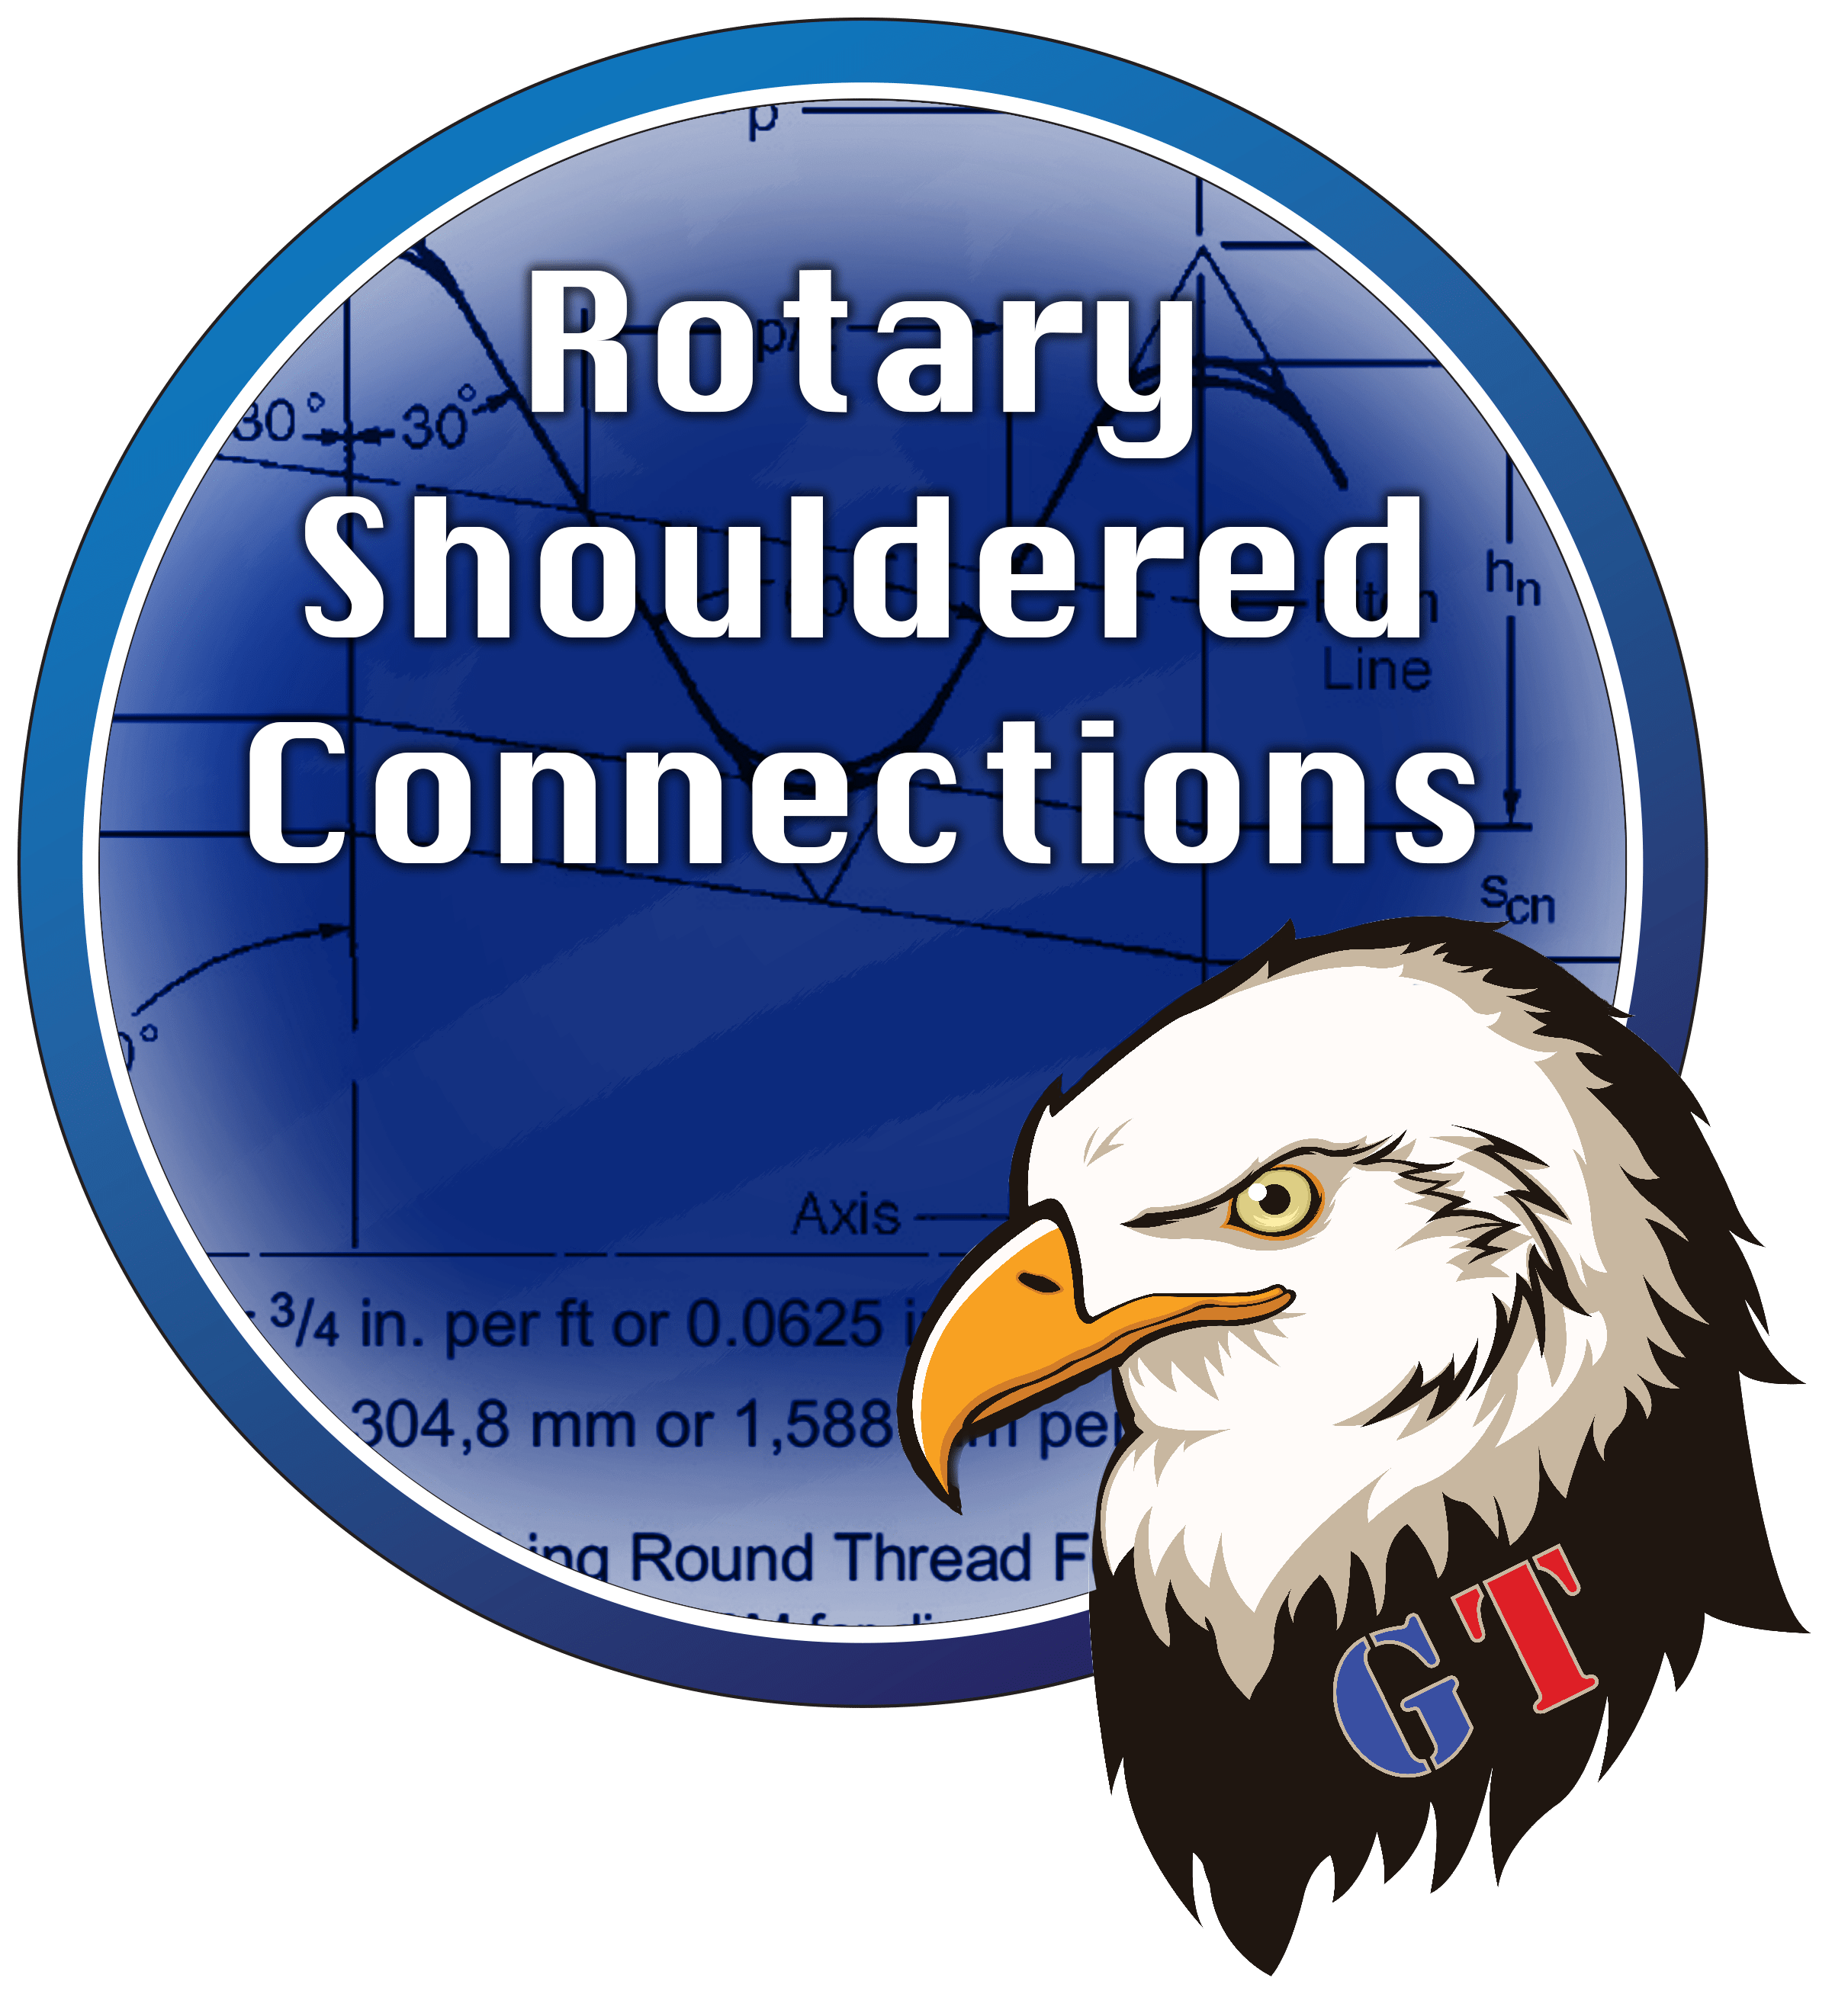 Rotary Shouldered Connections